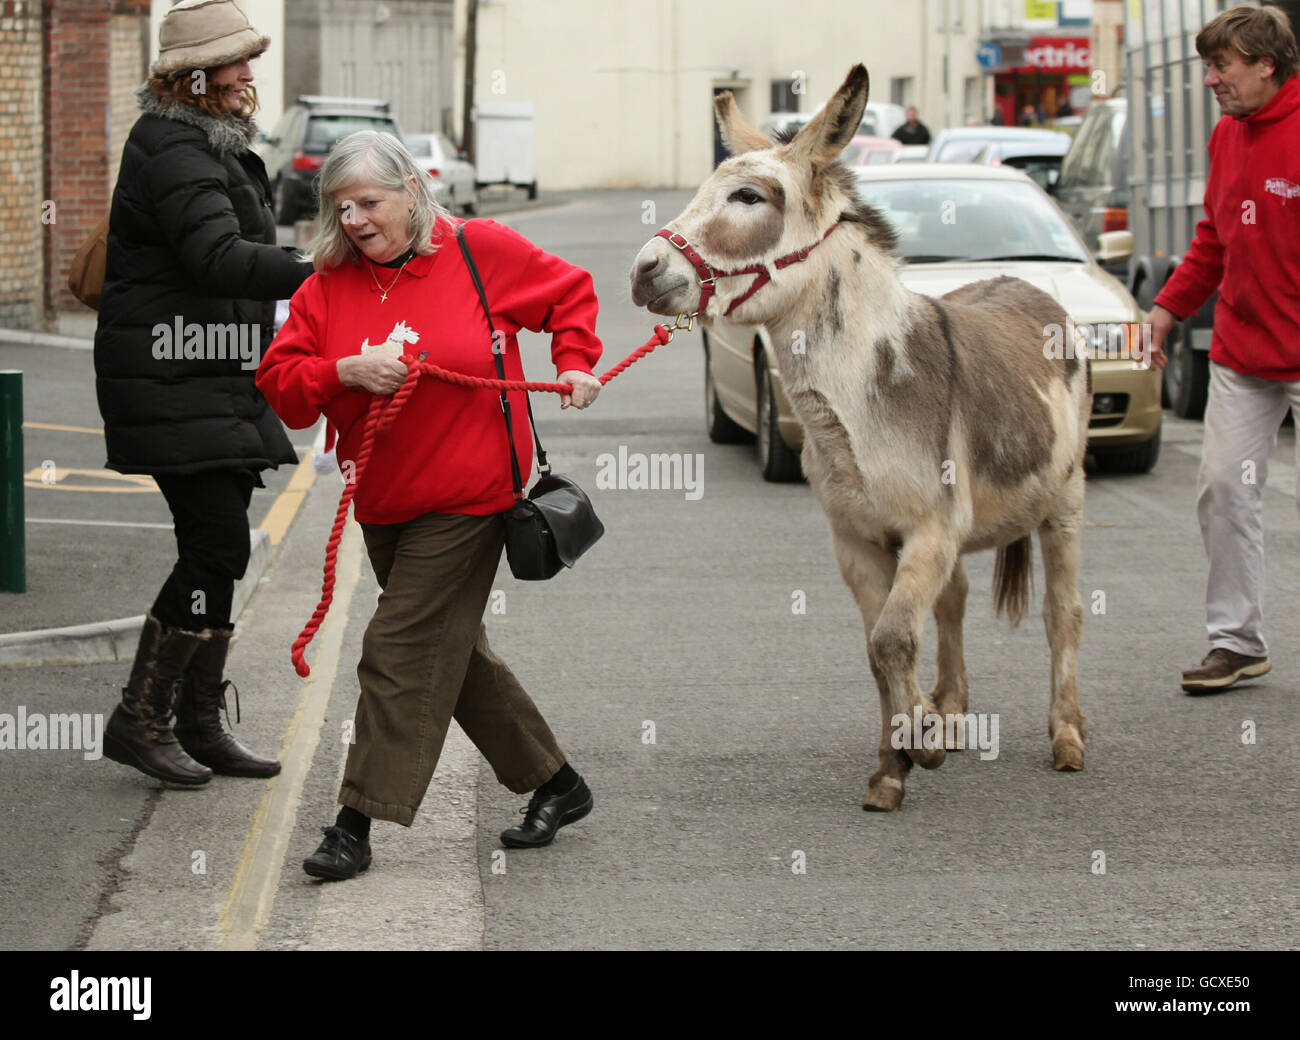 Ann Widdecombe with donkeys - Stock Image